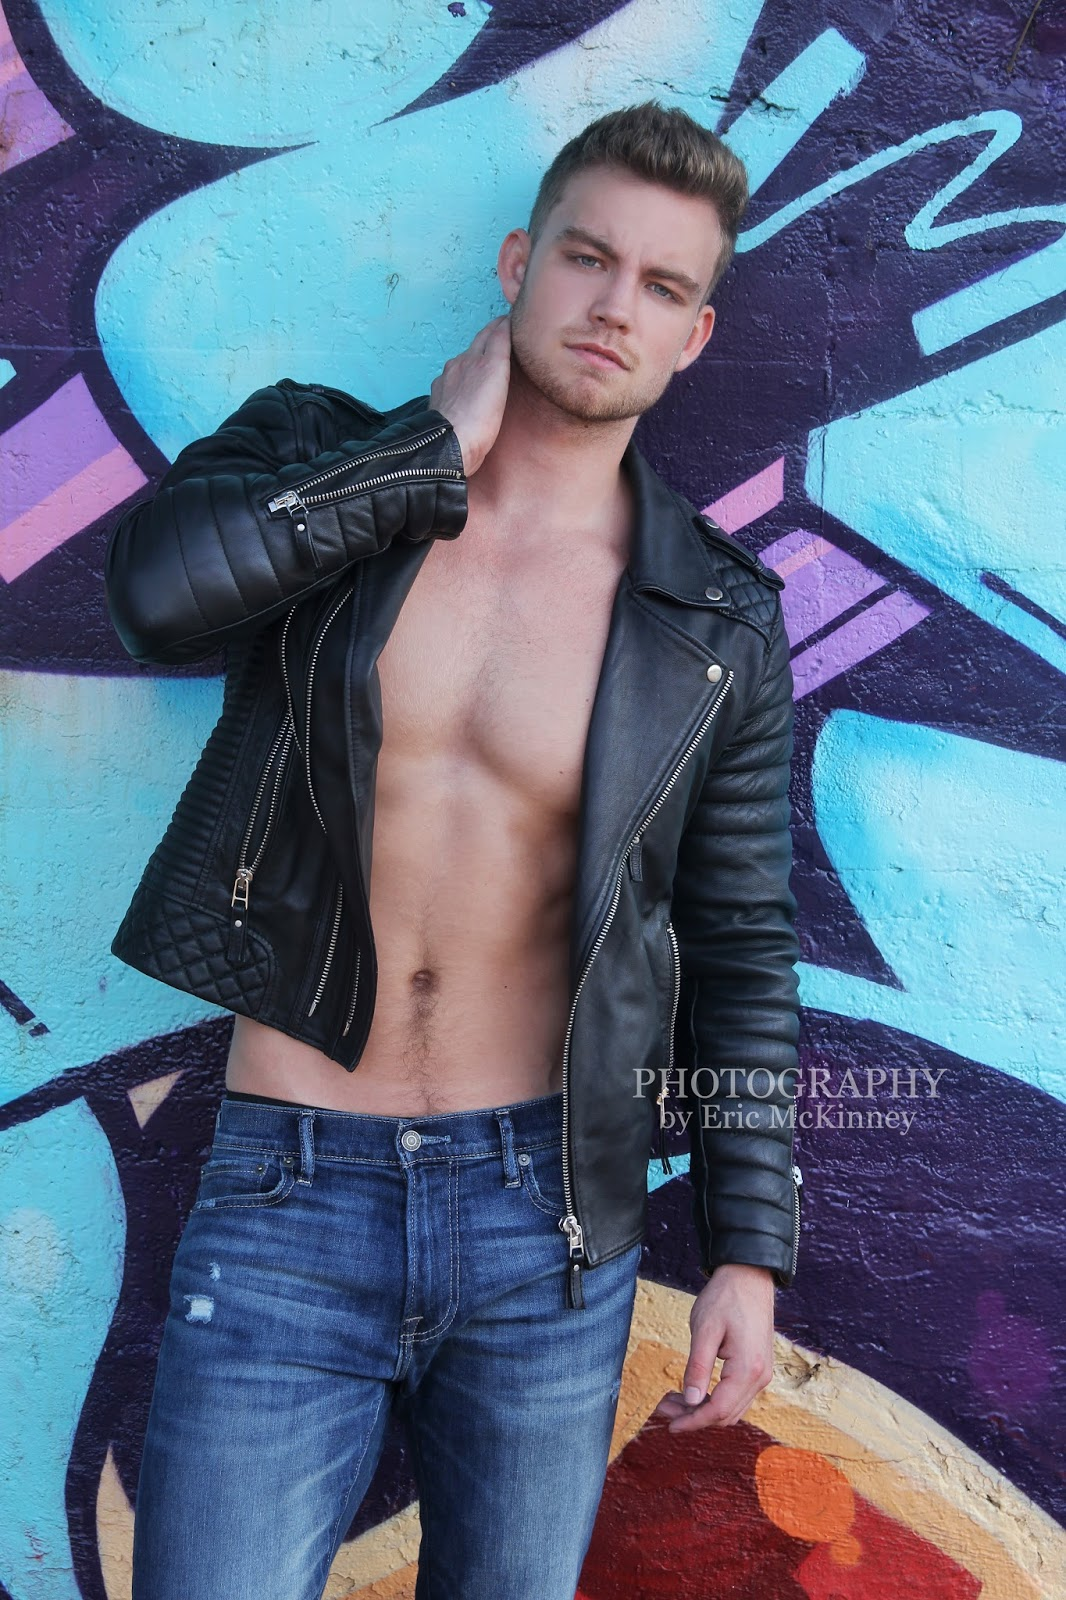 Dustin McNeer by Eric McKinney